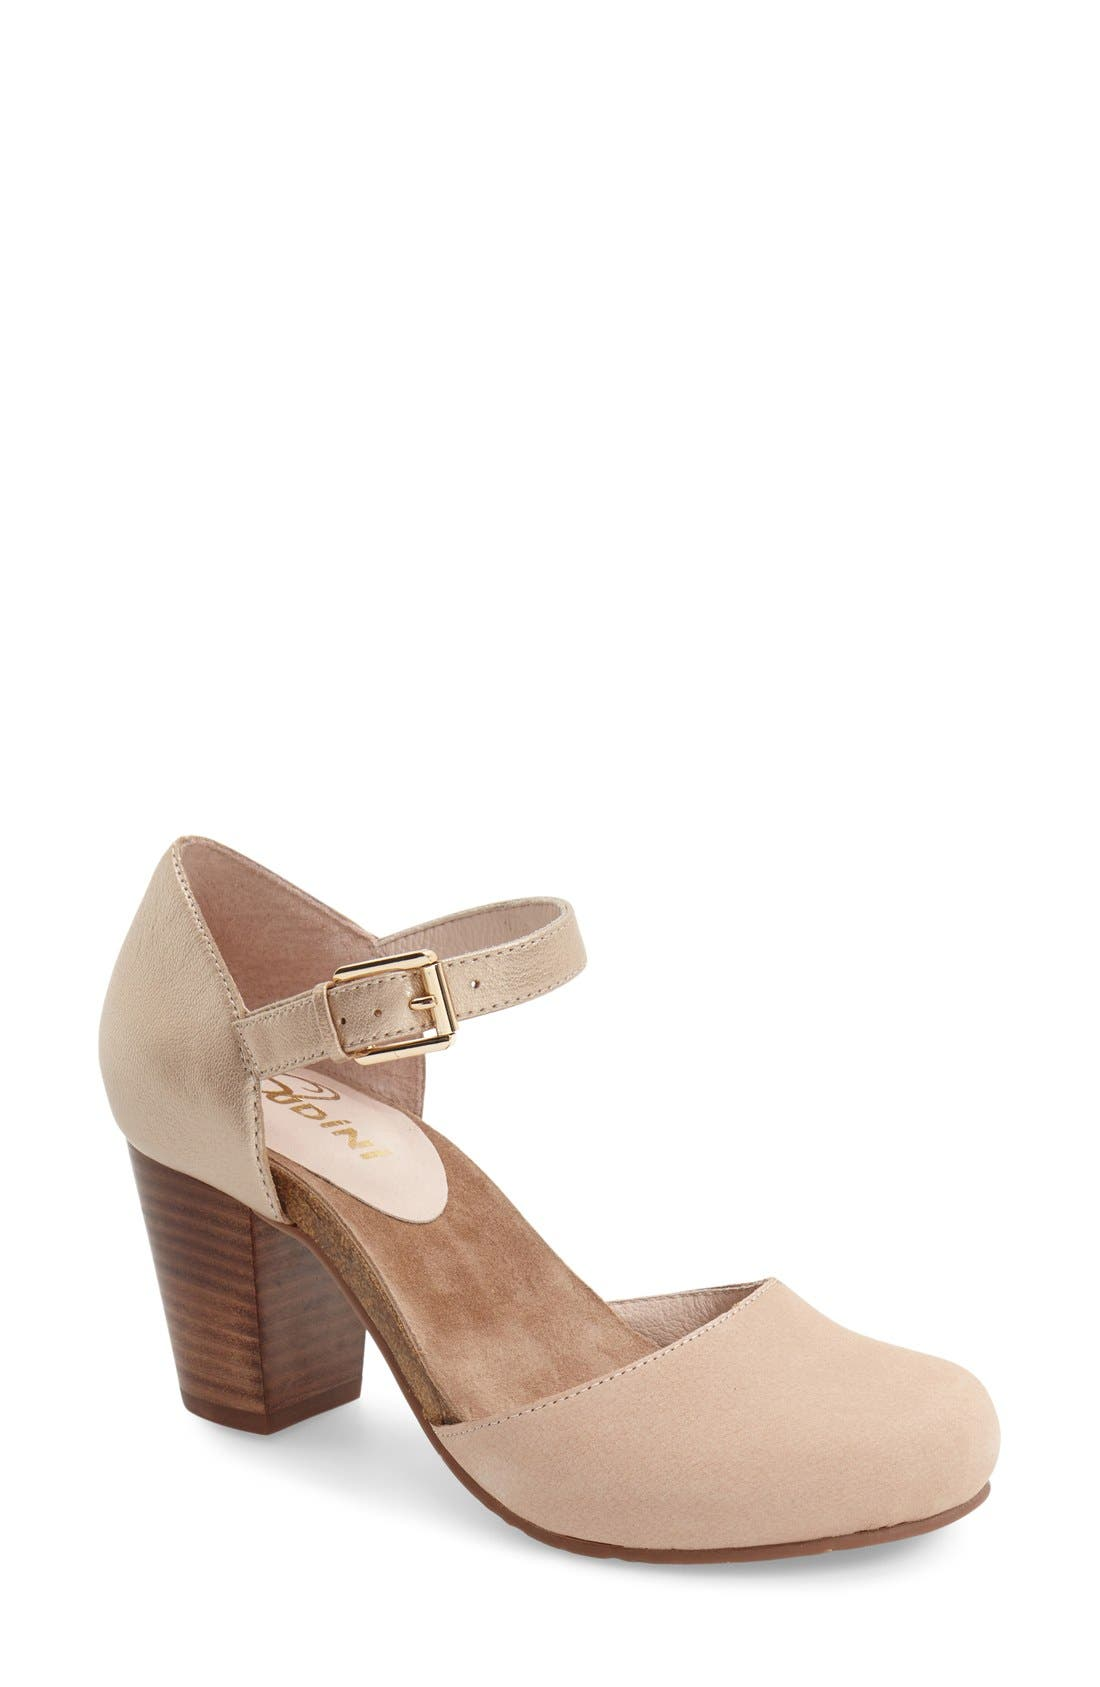 'Cam' Mary Jane Pump,                         Main,                         color, Sand Leather